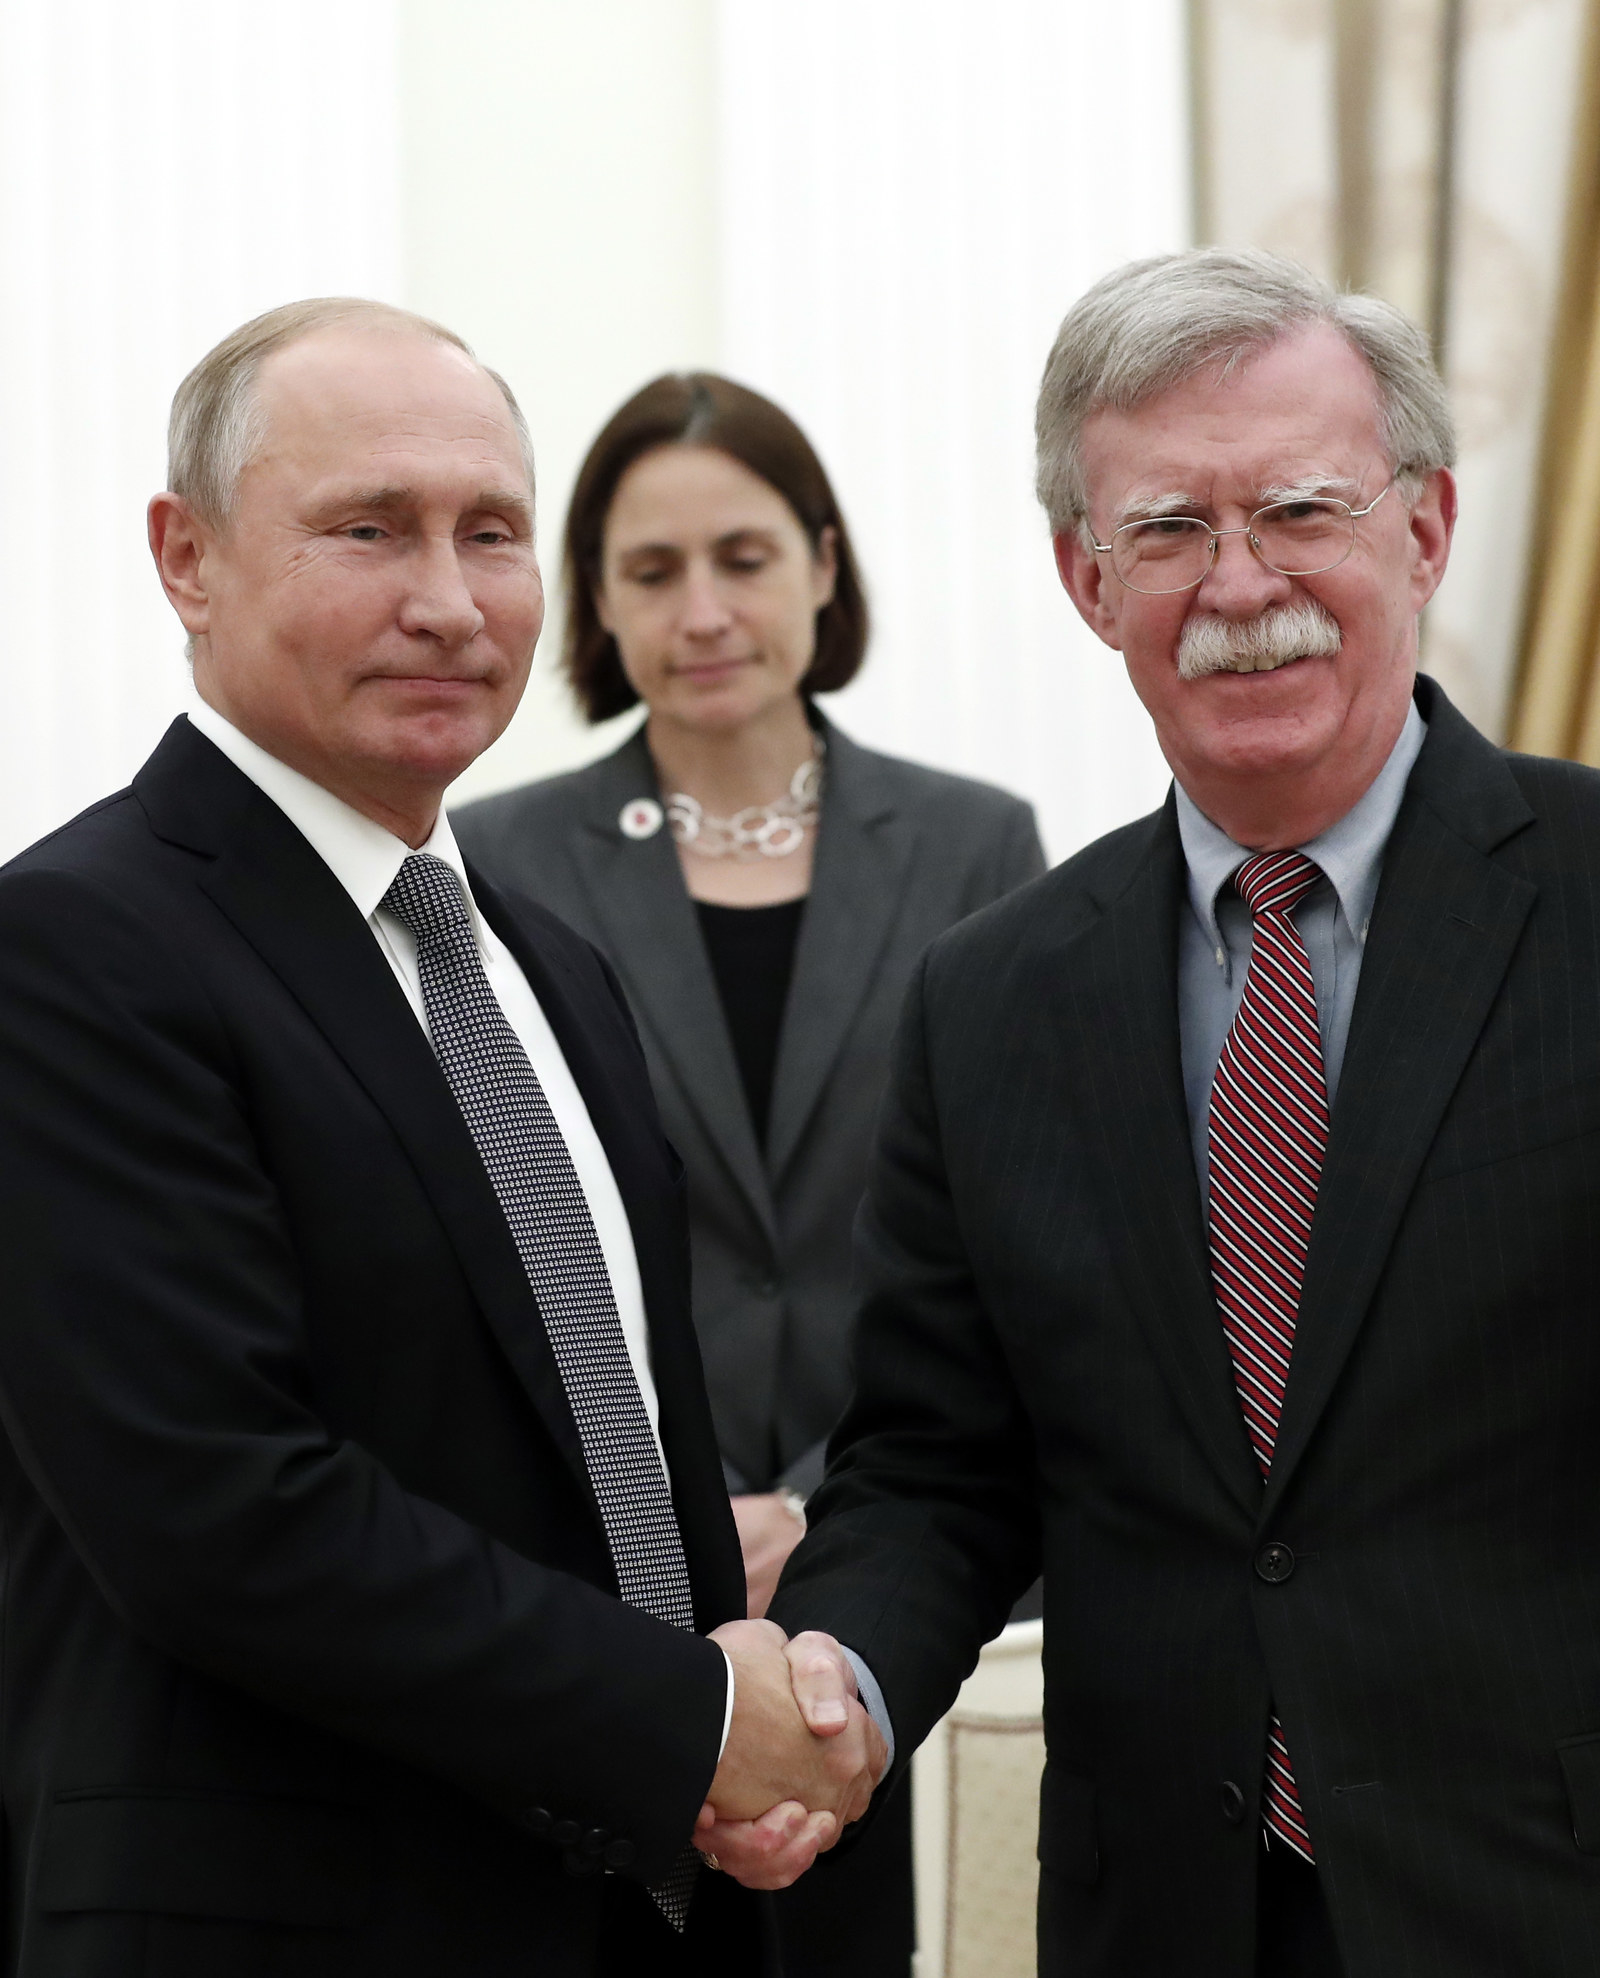 John Bolton (right), Trump's national security adviser, with Vladimir Putin in Moscow last week.